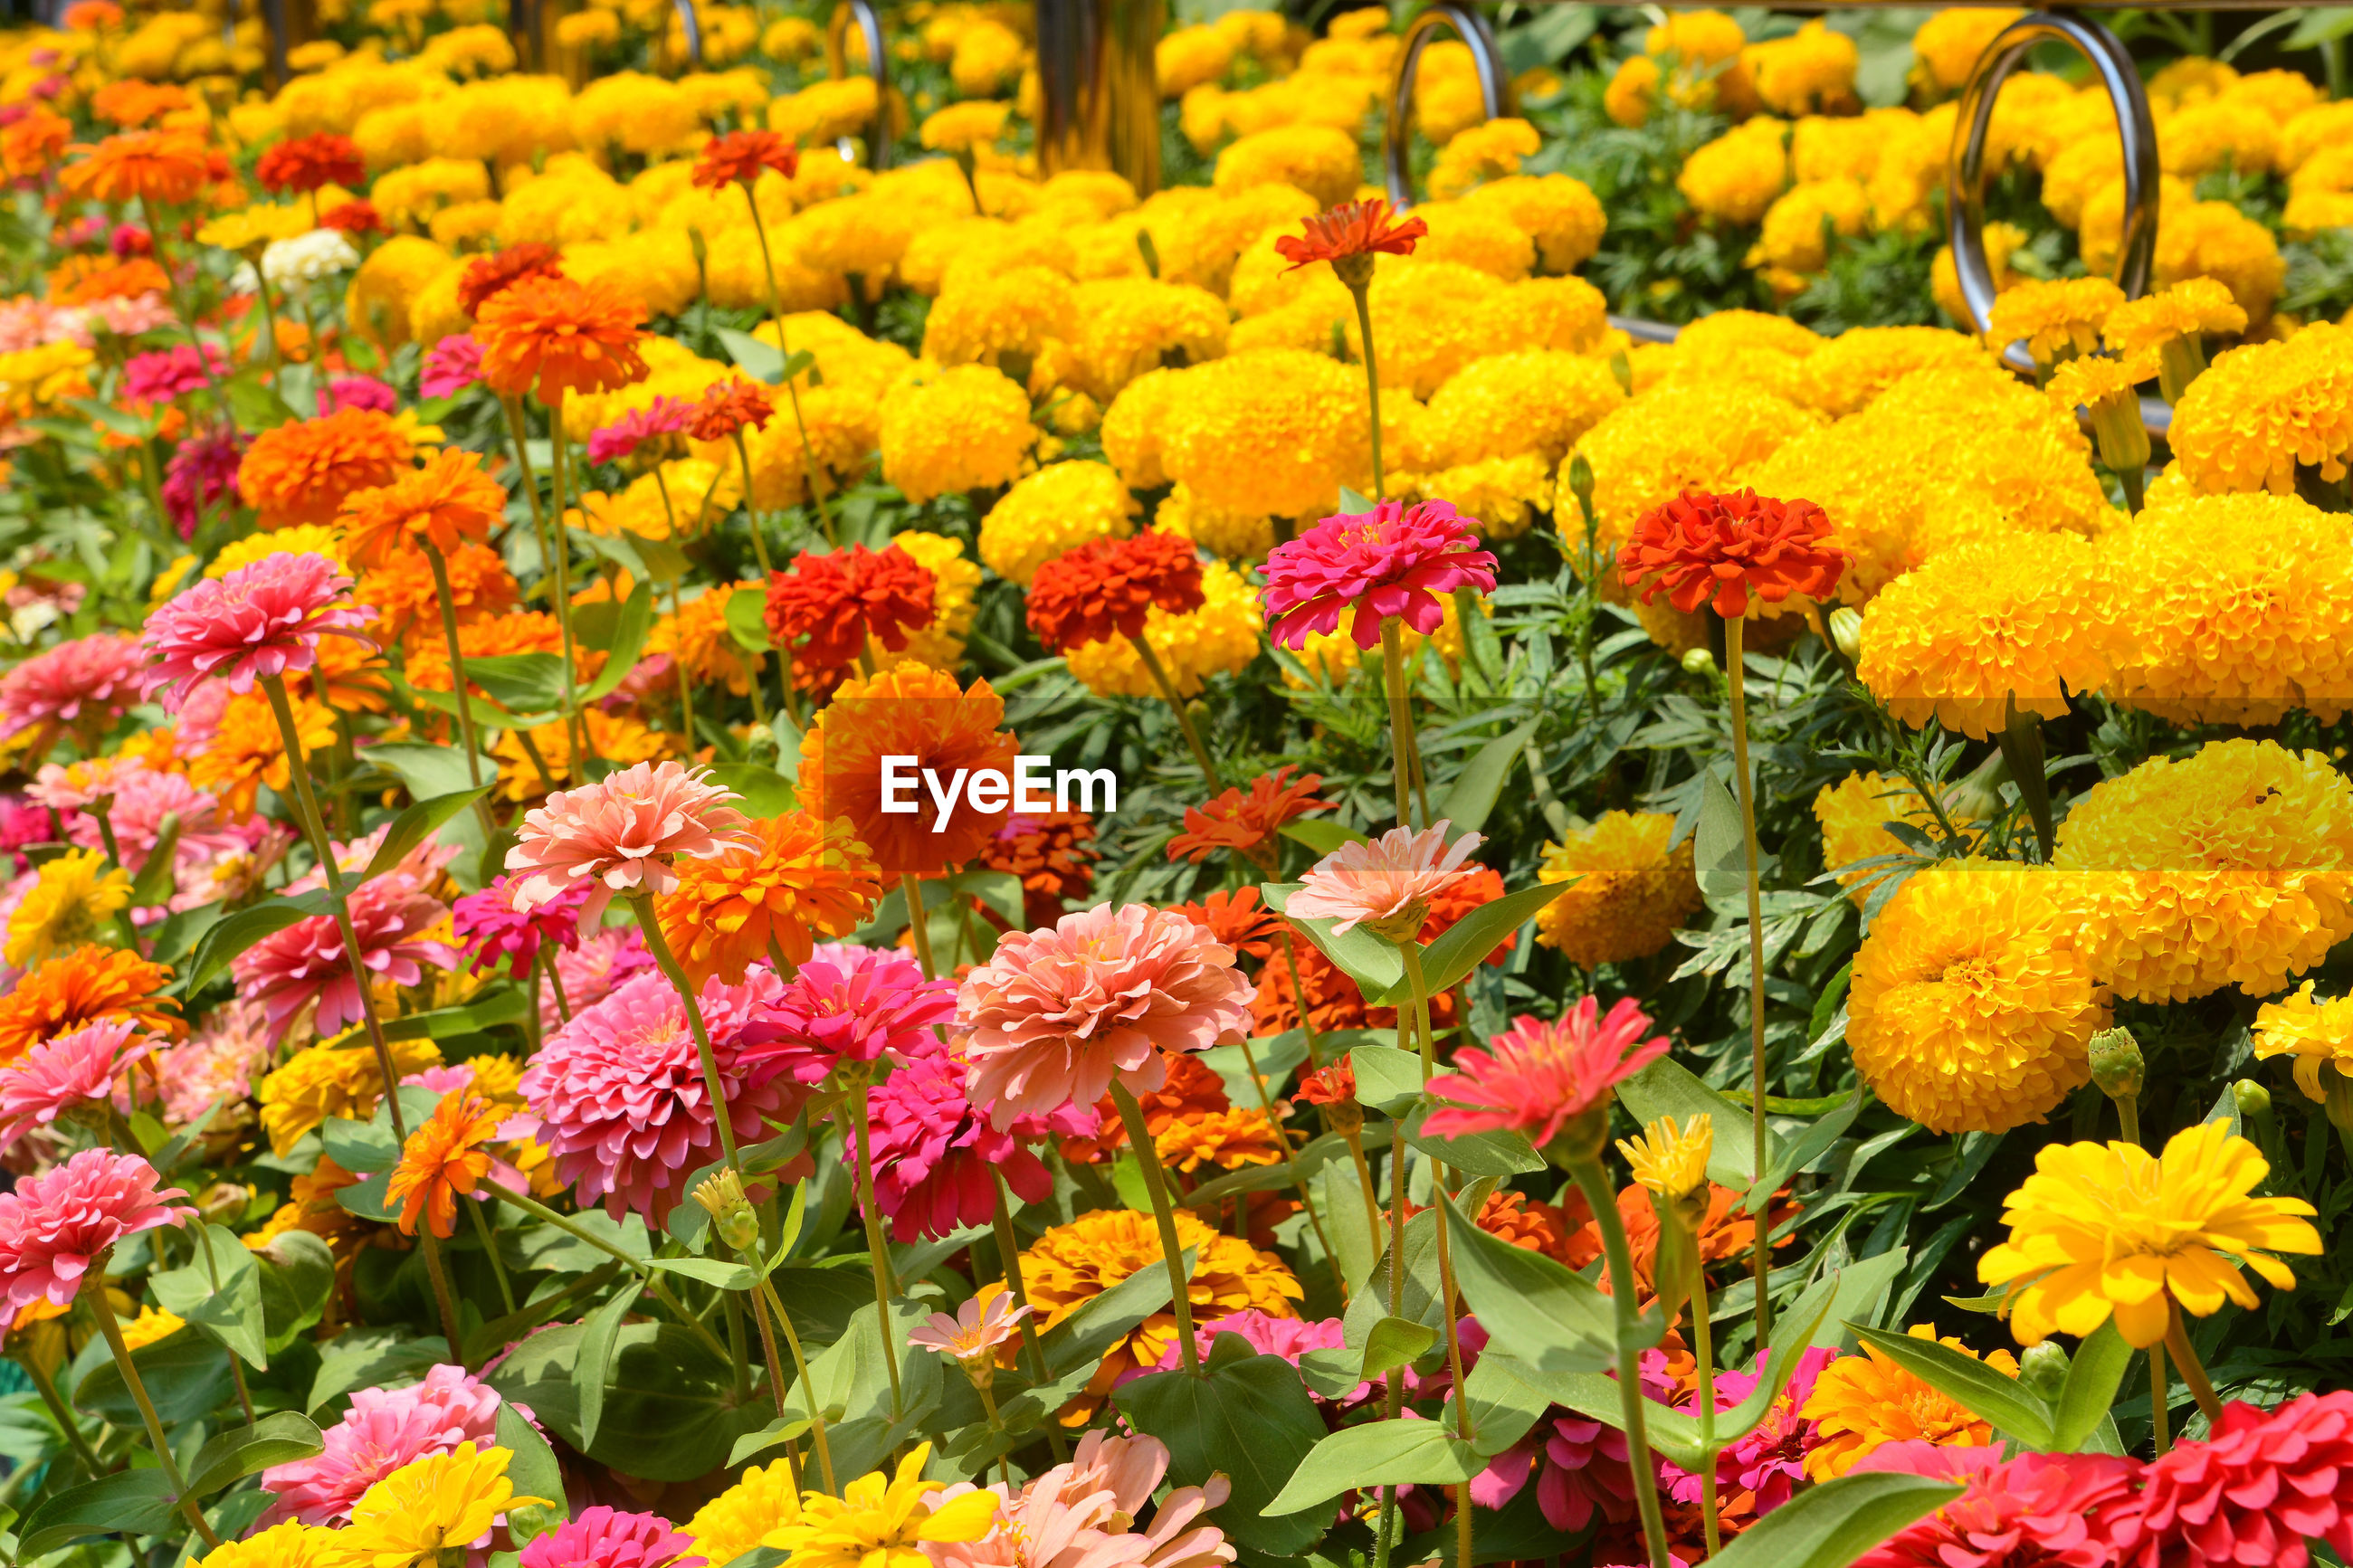 CLOSE-UP OF MULTI COLORED FLOWERS IN PARK